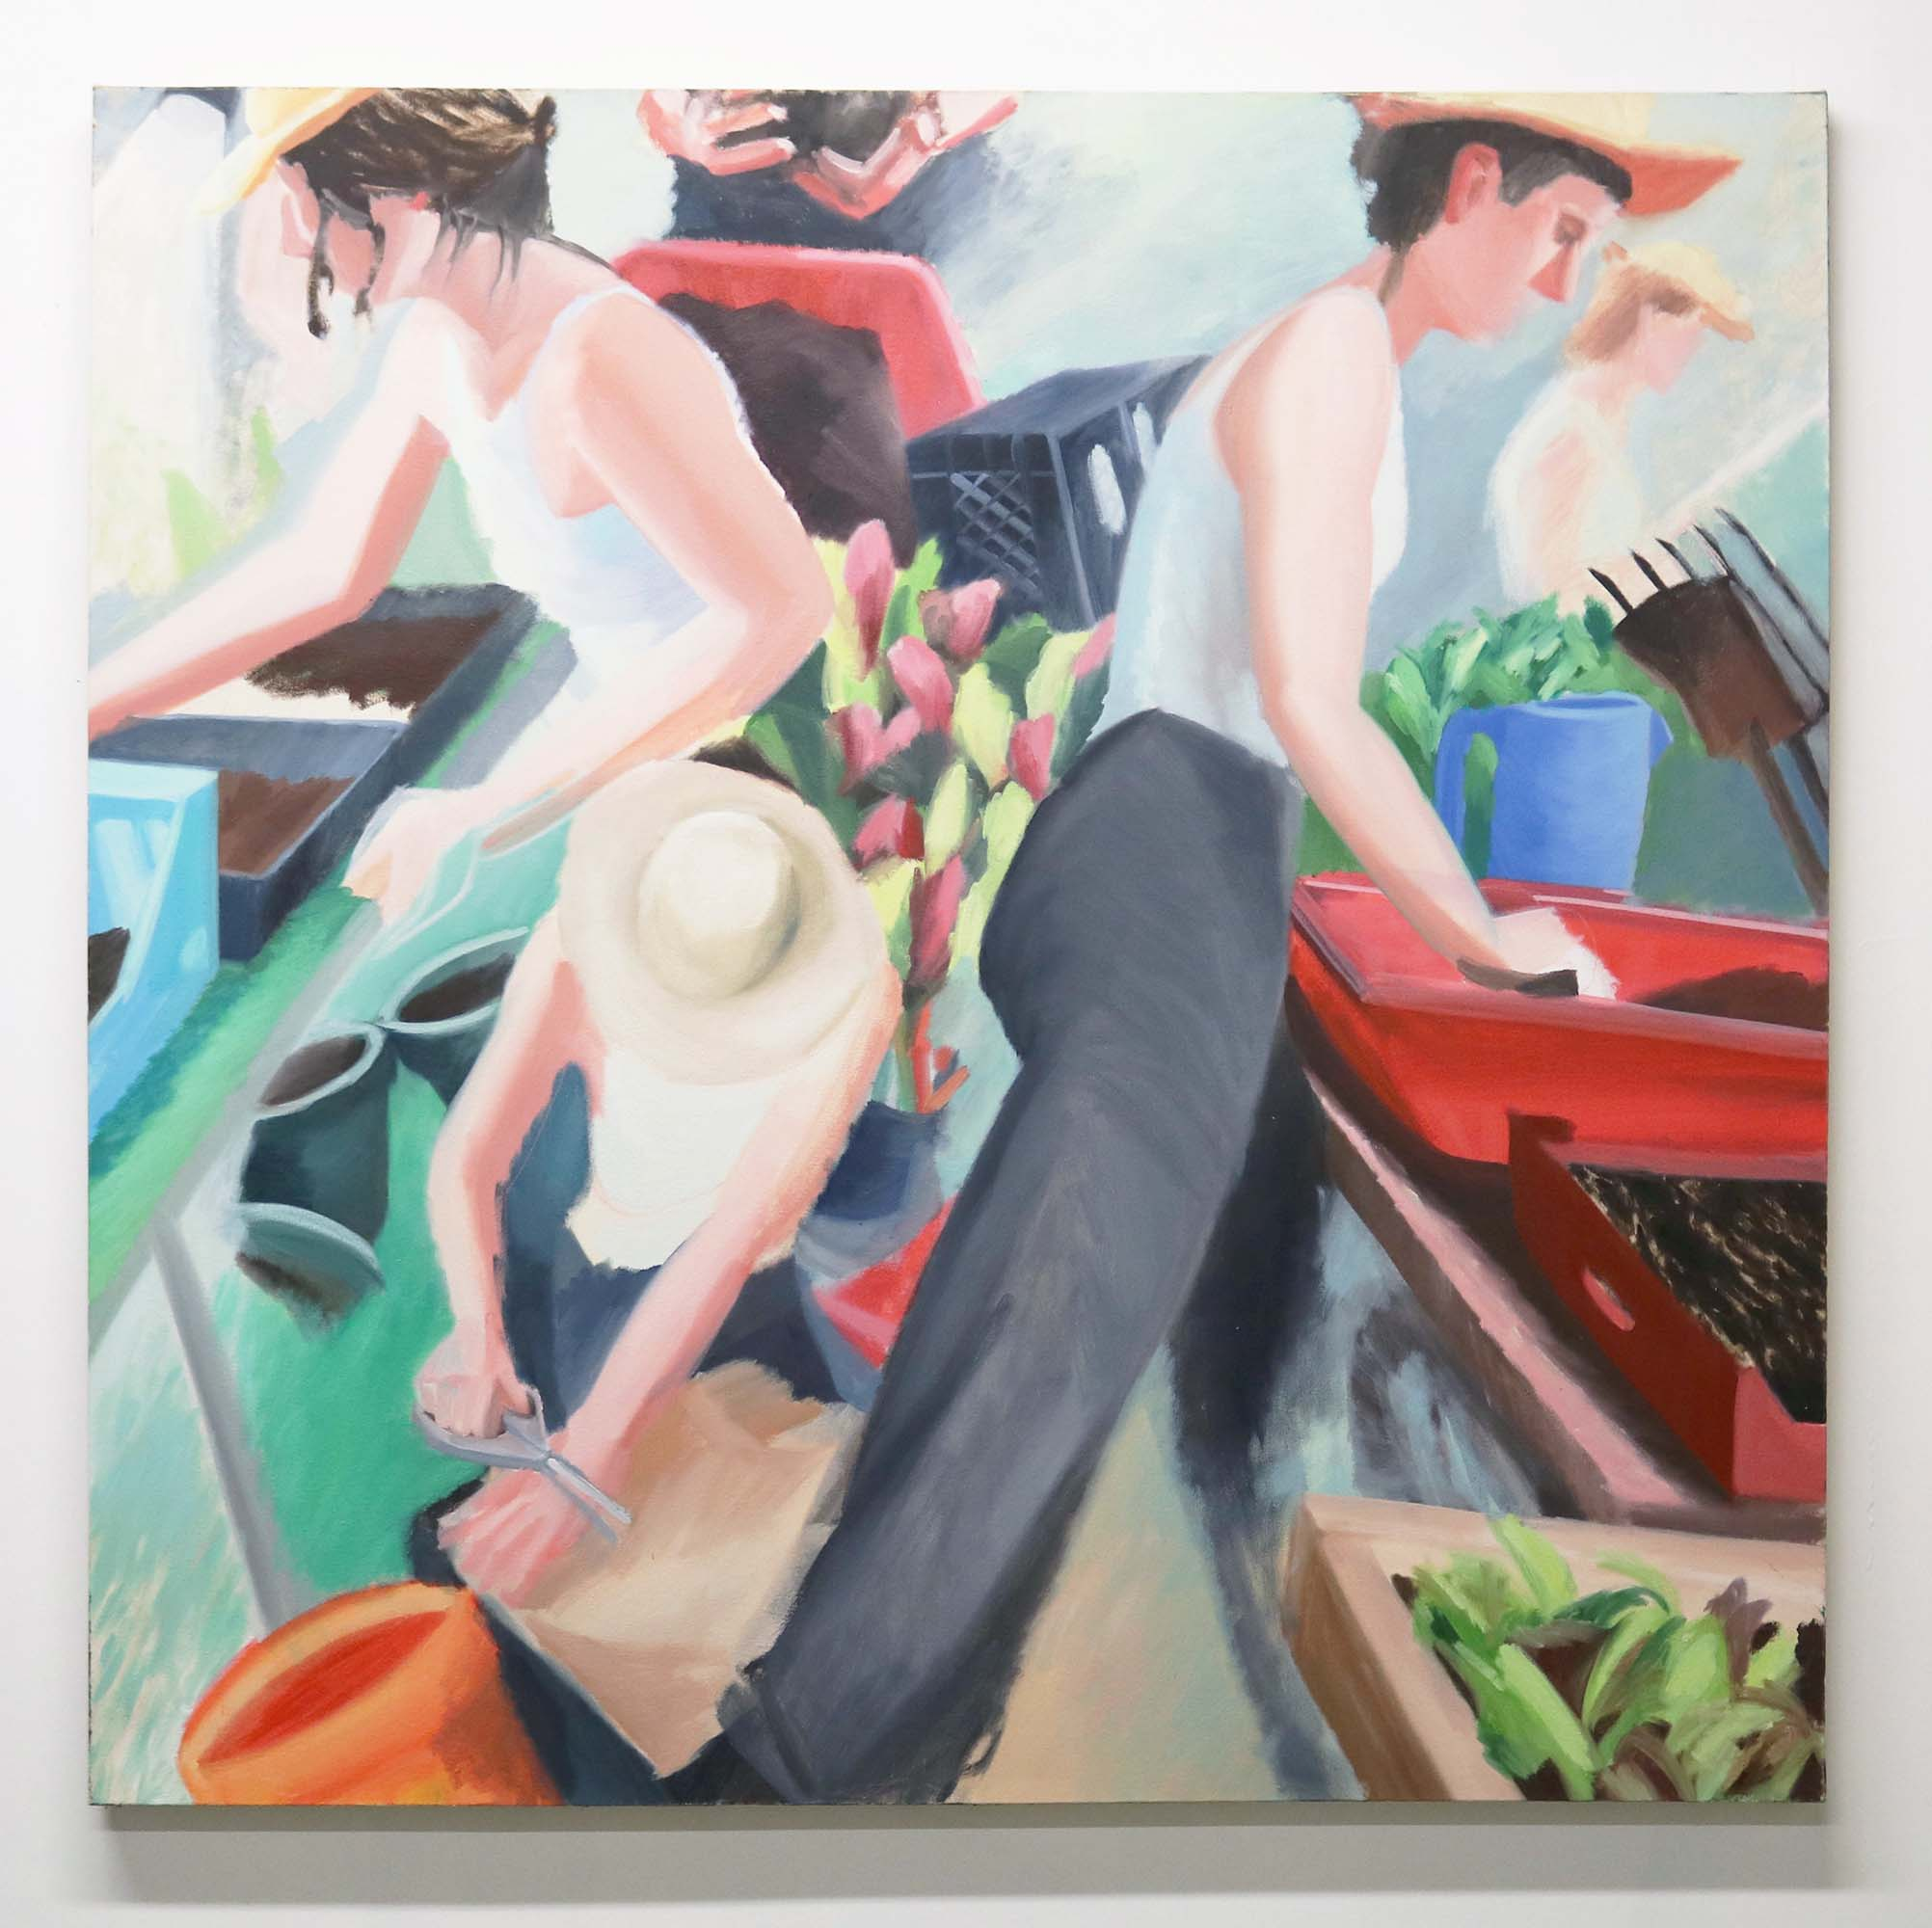 Grace Mattingly, Molly in the Greenhouse, Oil on canvas, 60